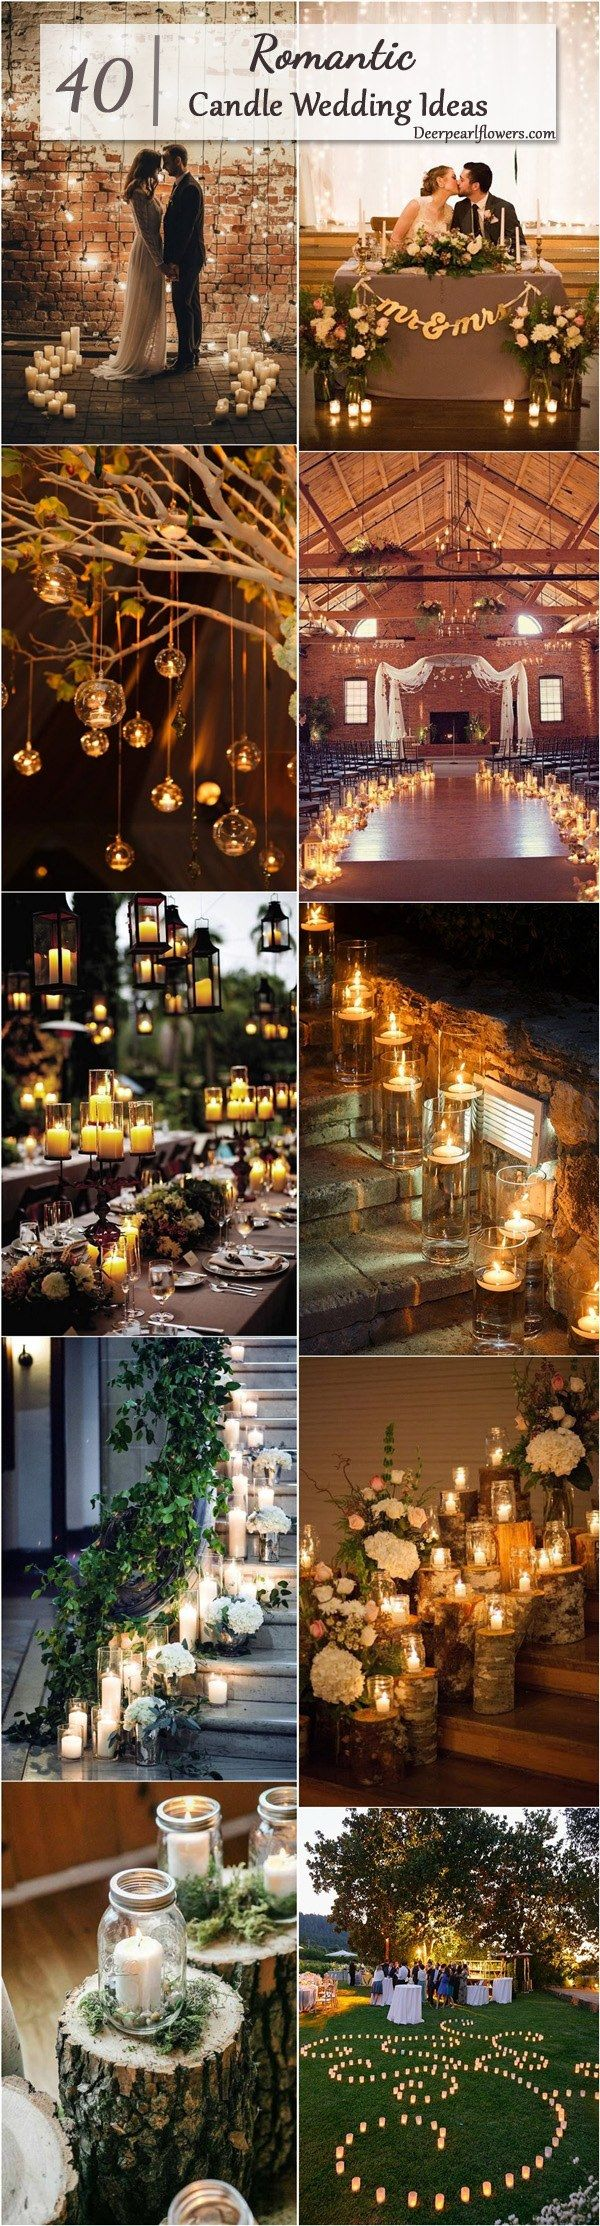 church wedding decorations candles%0A    Chic Romantic Wedding Ideas Using Candles